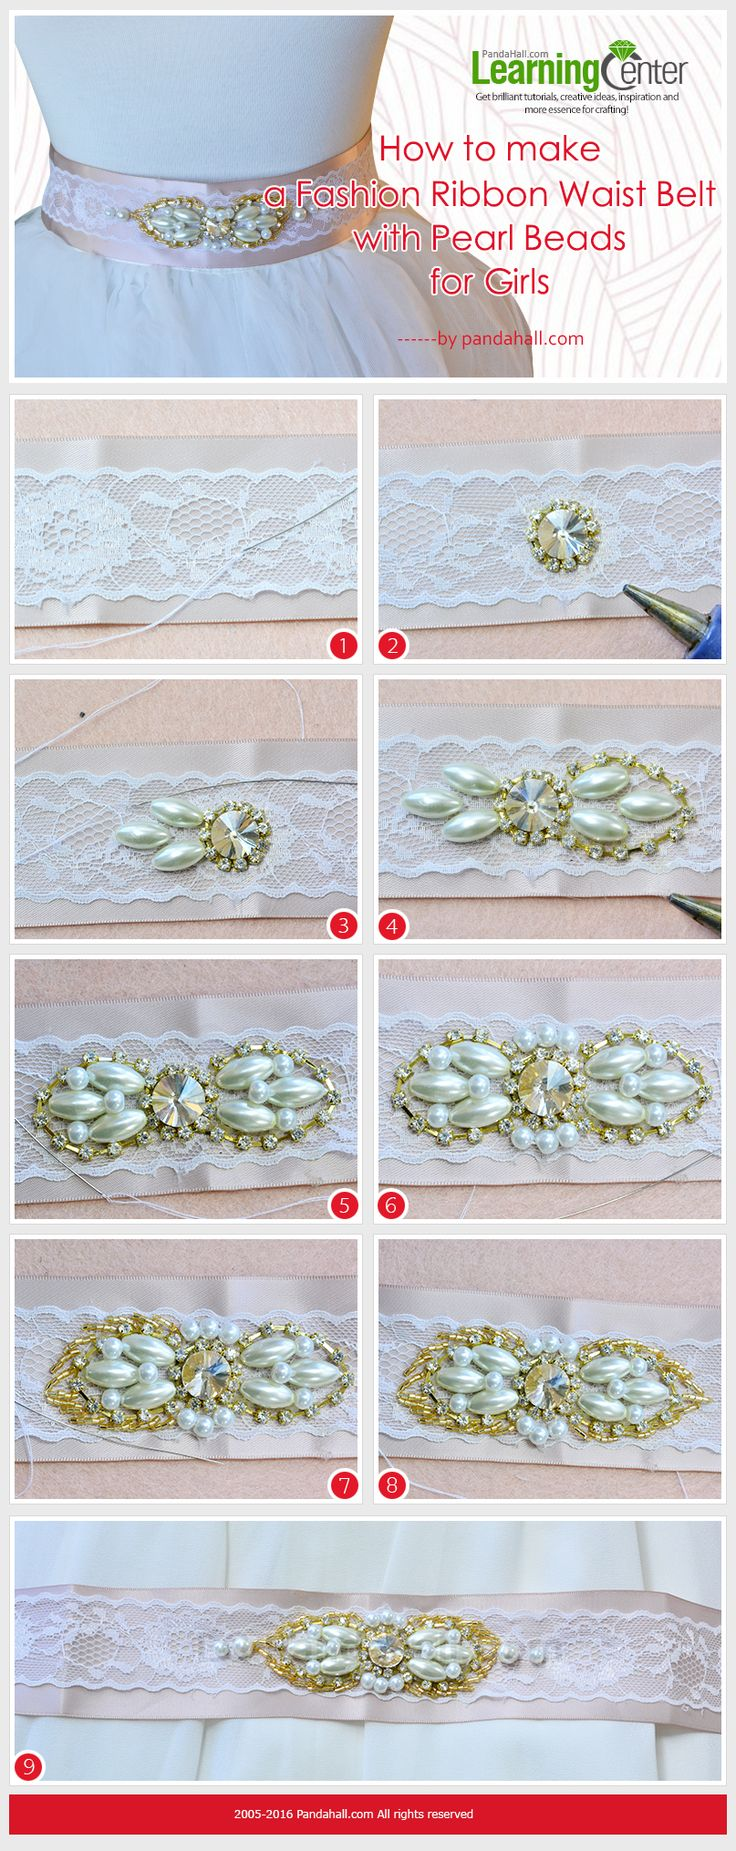 How to Make a Fashion Ribbon Waist Belt with Pearl Beads for Girls #waistbelt #diybelt #pandahall   PandaHall Promotion: use coupon code MayPINEN10OFF for 10% off for your orders, valid time from May 18 to May 31.